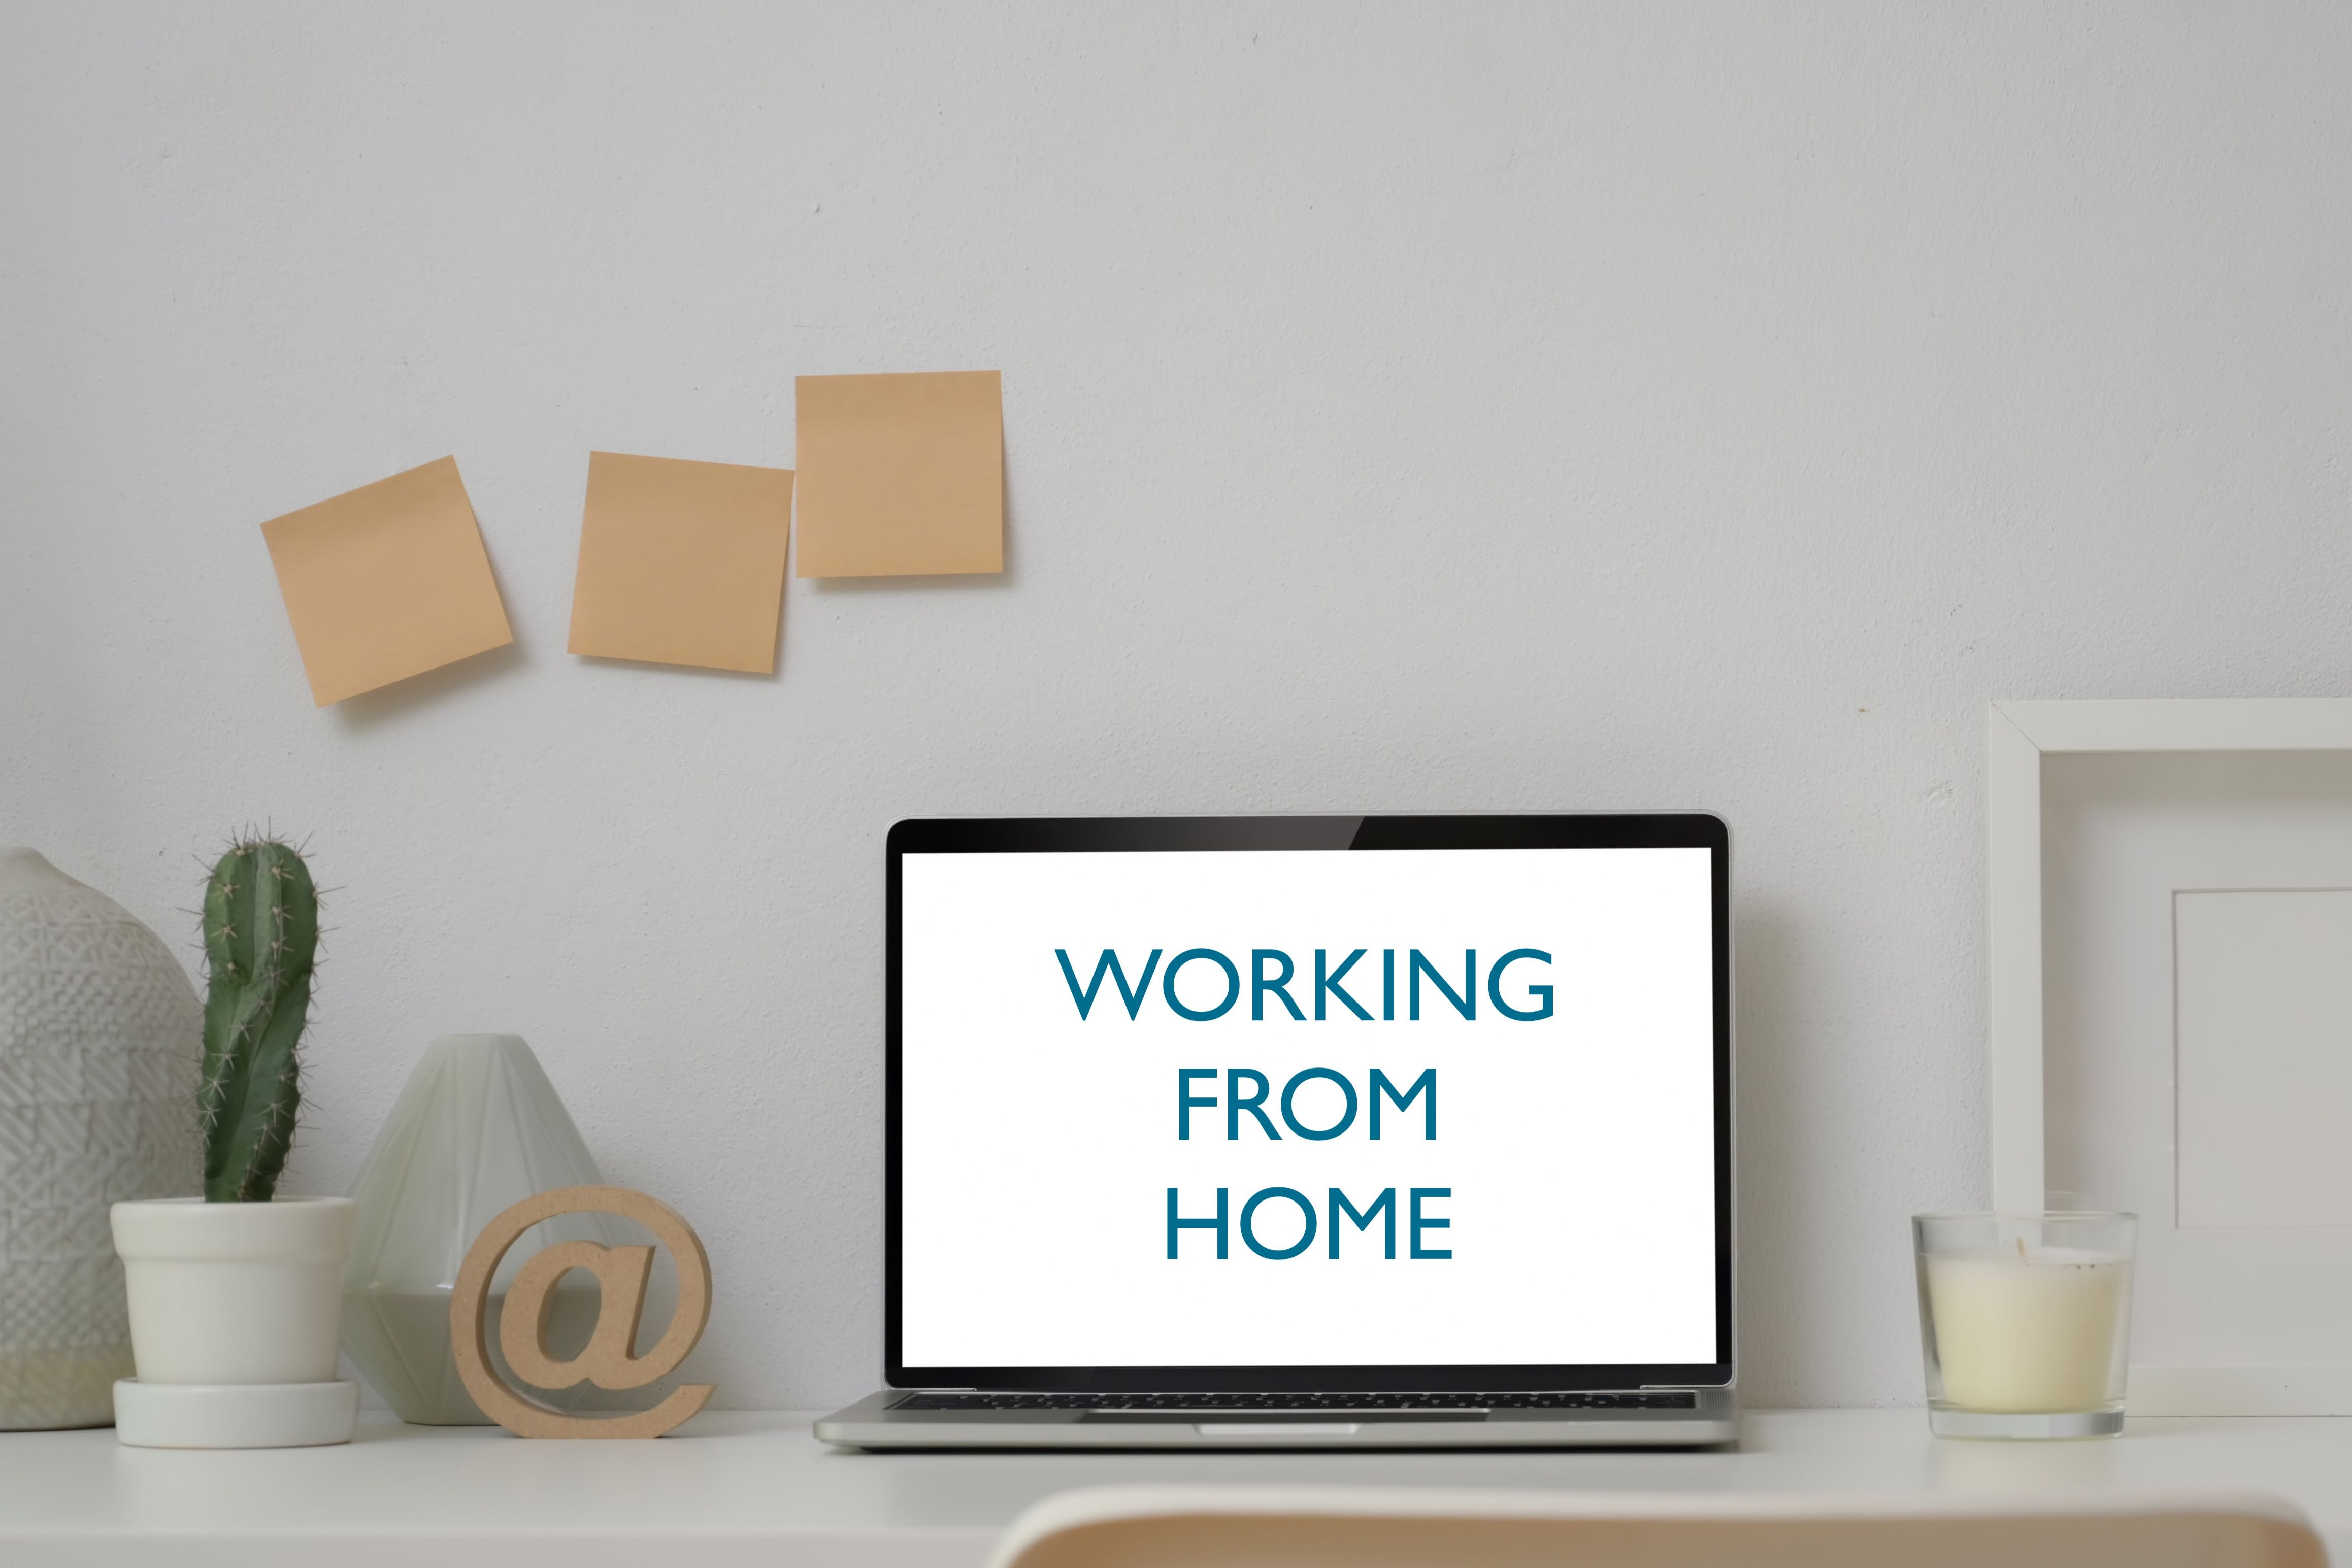 Business Continuity As We Move To Working From Home